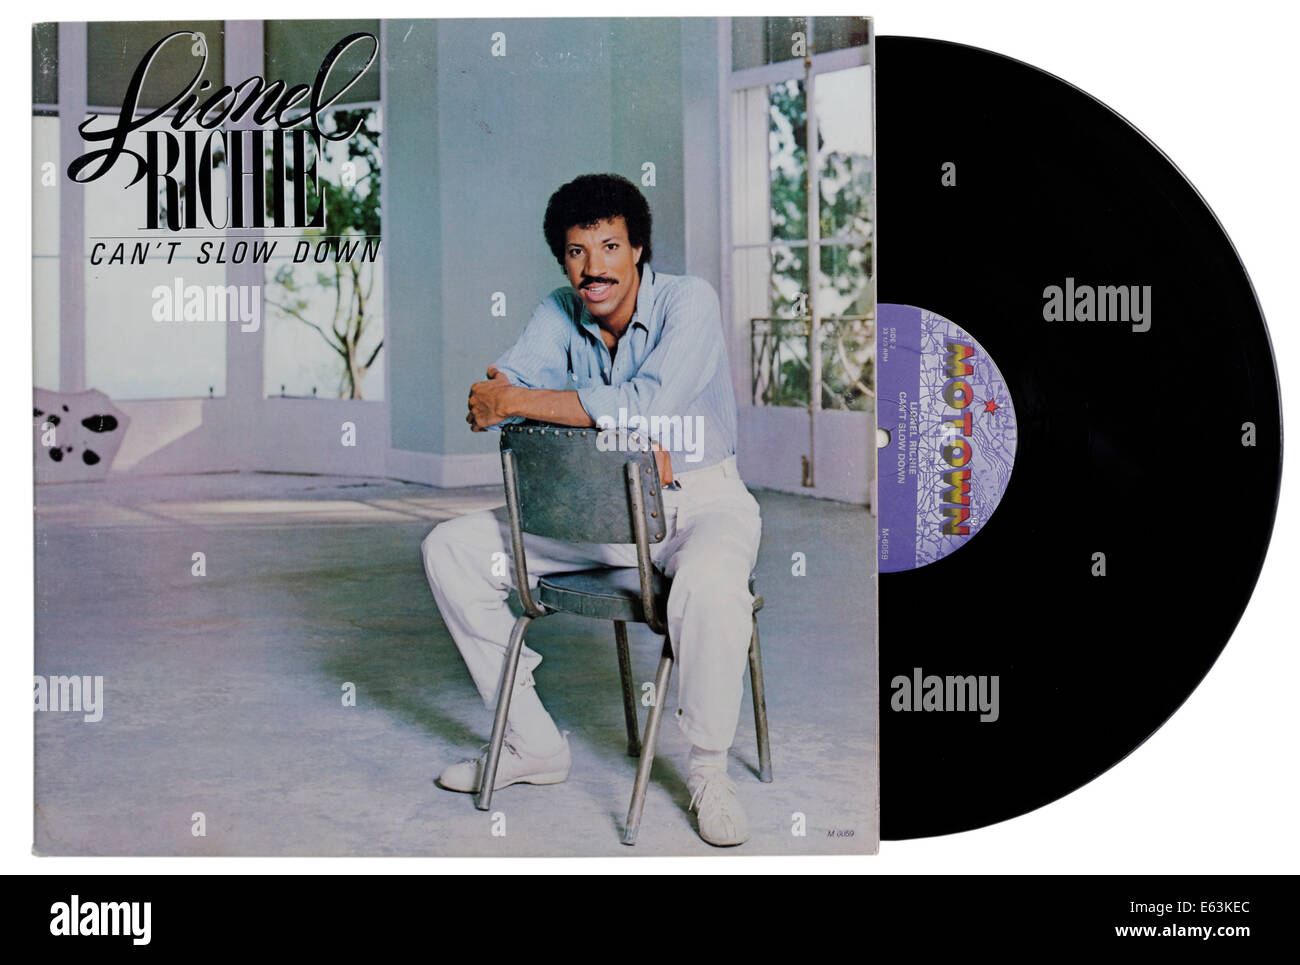 Can't Slow Down by Lionel Richie - Stock Image